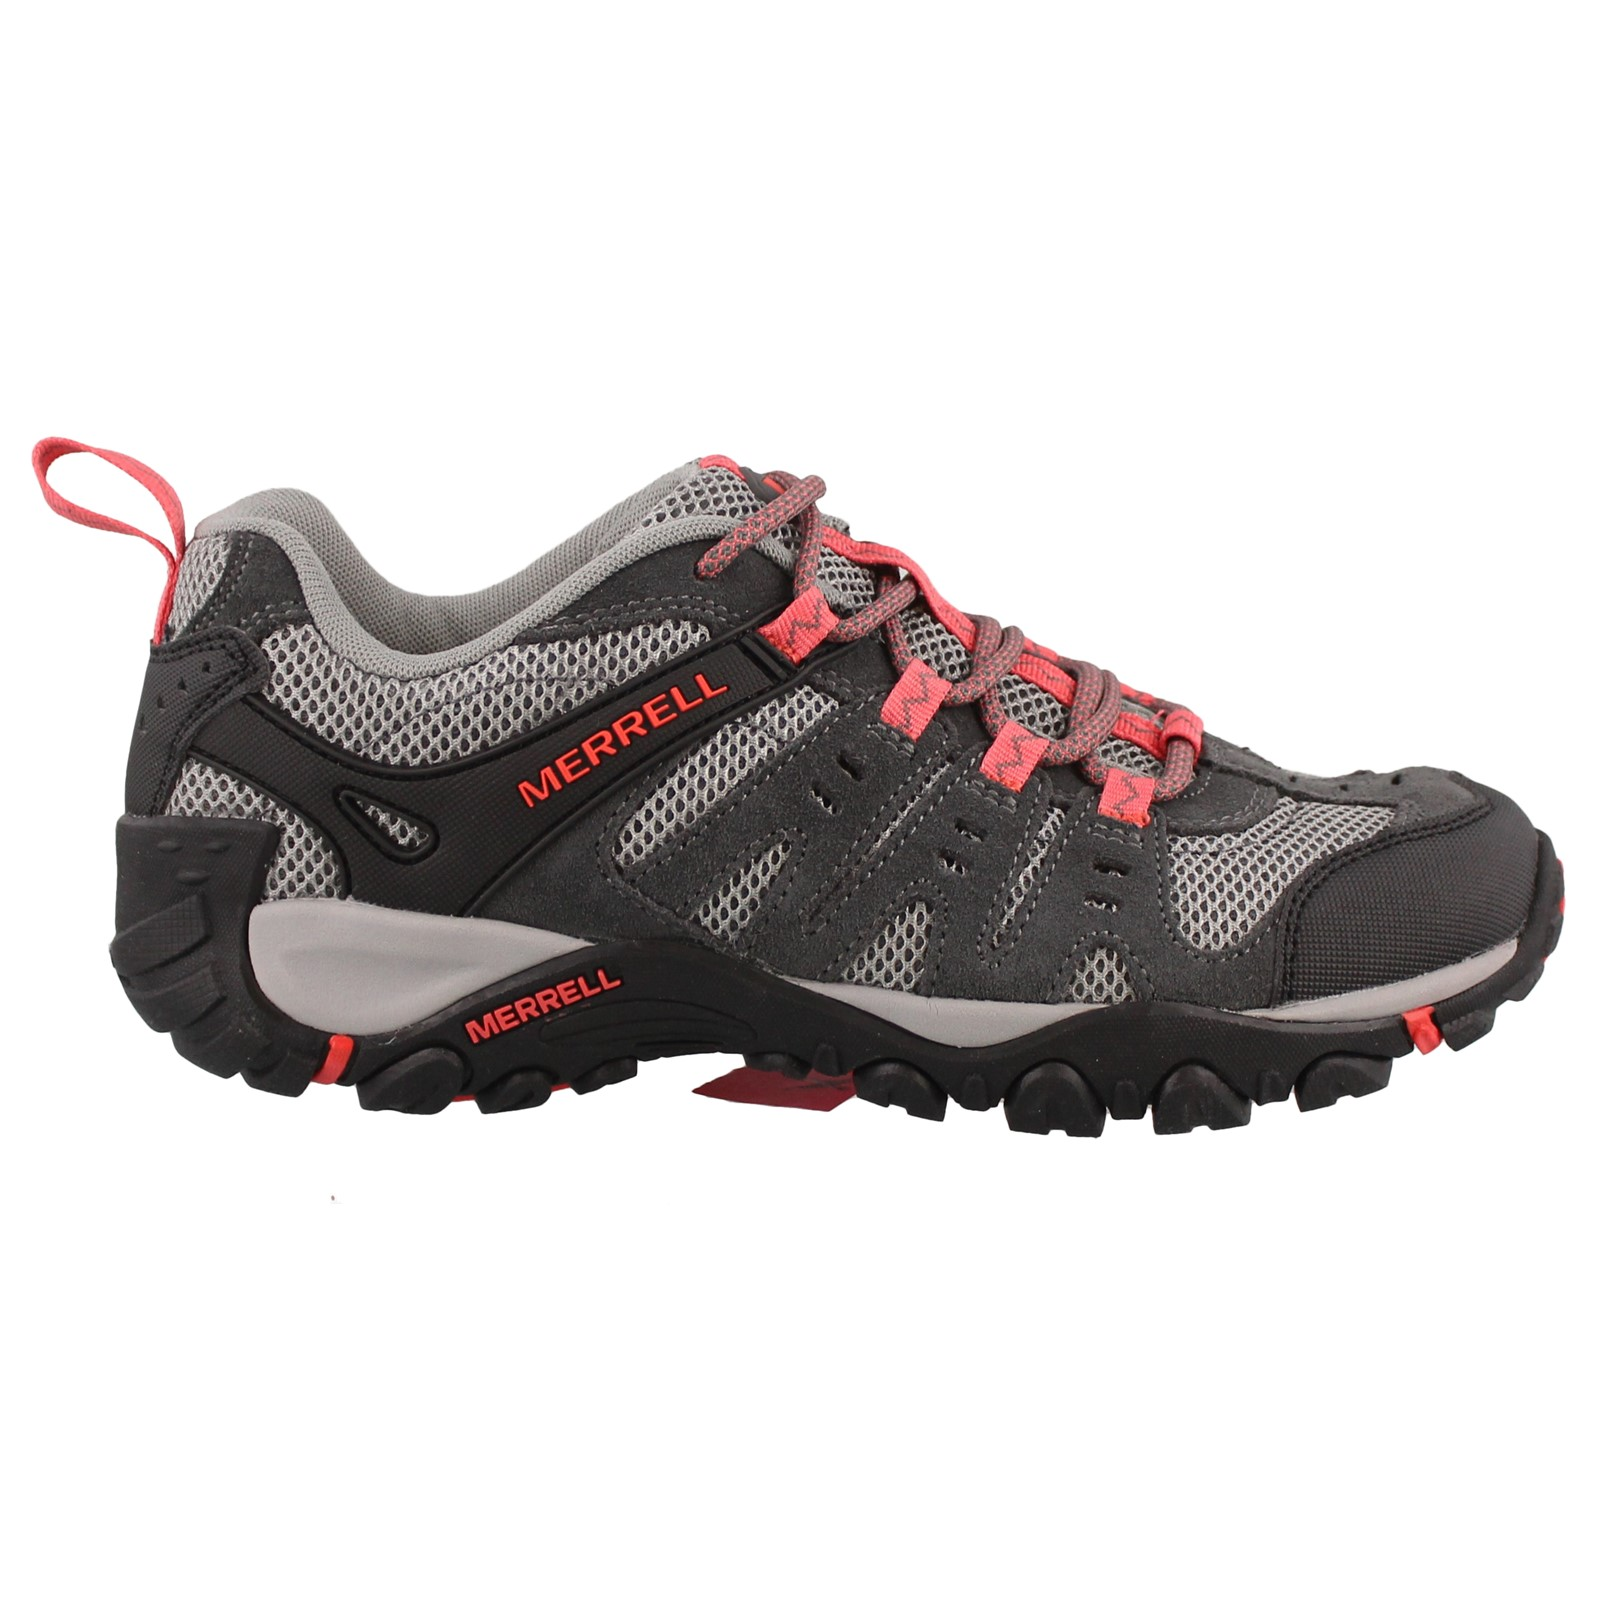 Women's Merrell, Accentor Hiking Shoes